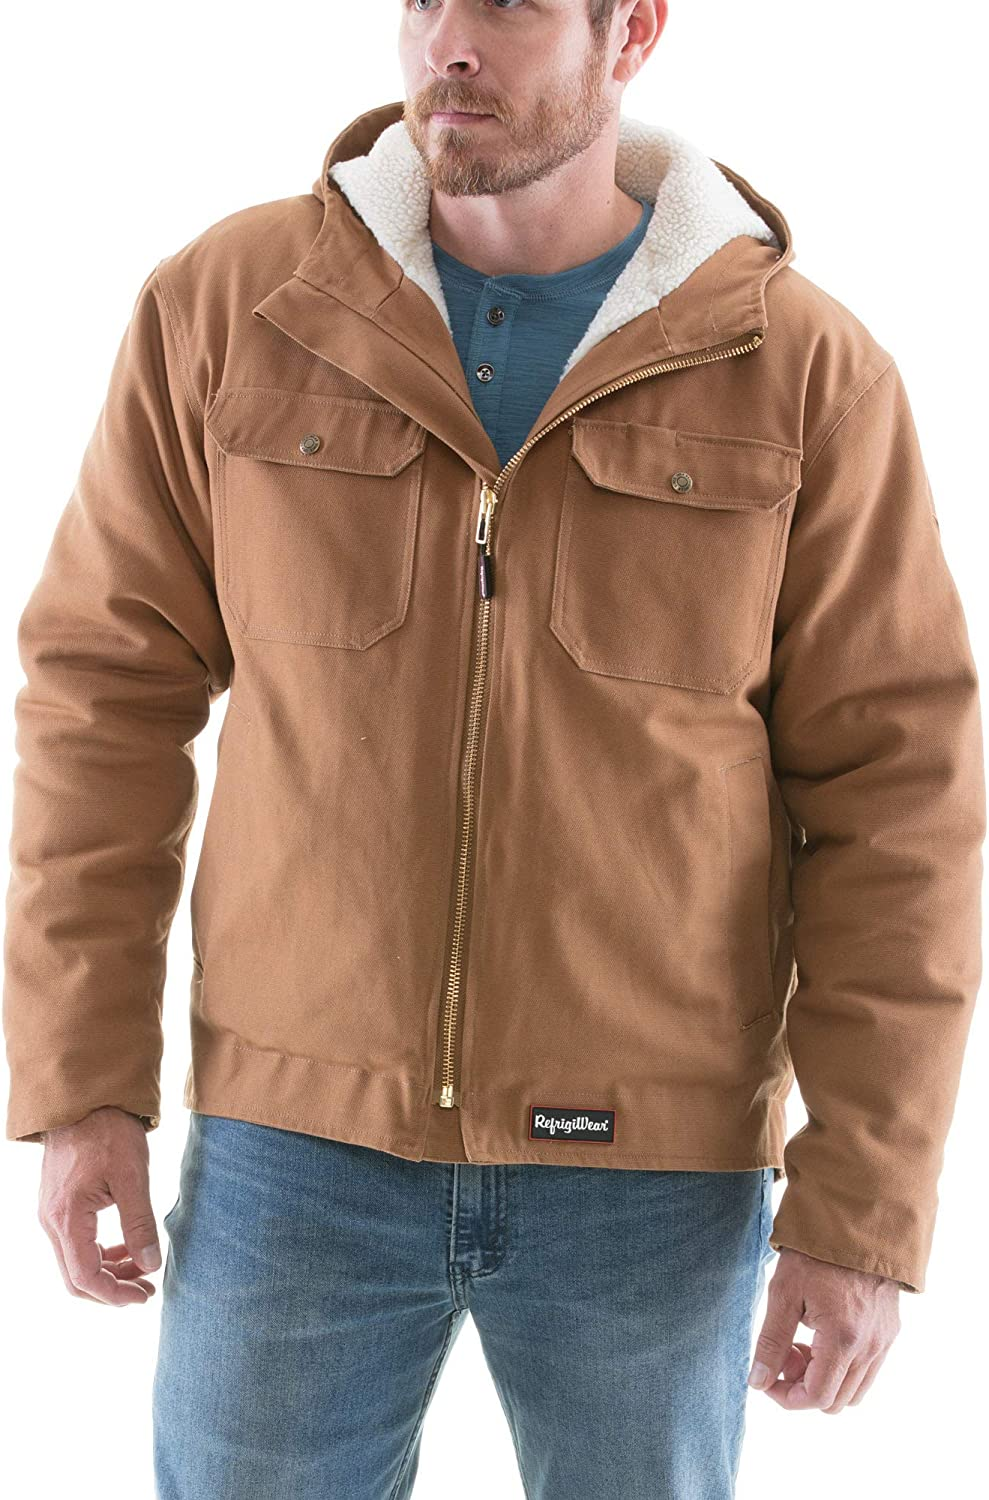 RefrigiWear Mens Sherpa Lined Insulated Arctic Duck Workwear Jacket with Hood